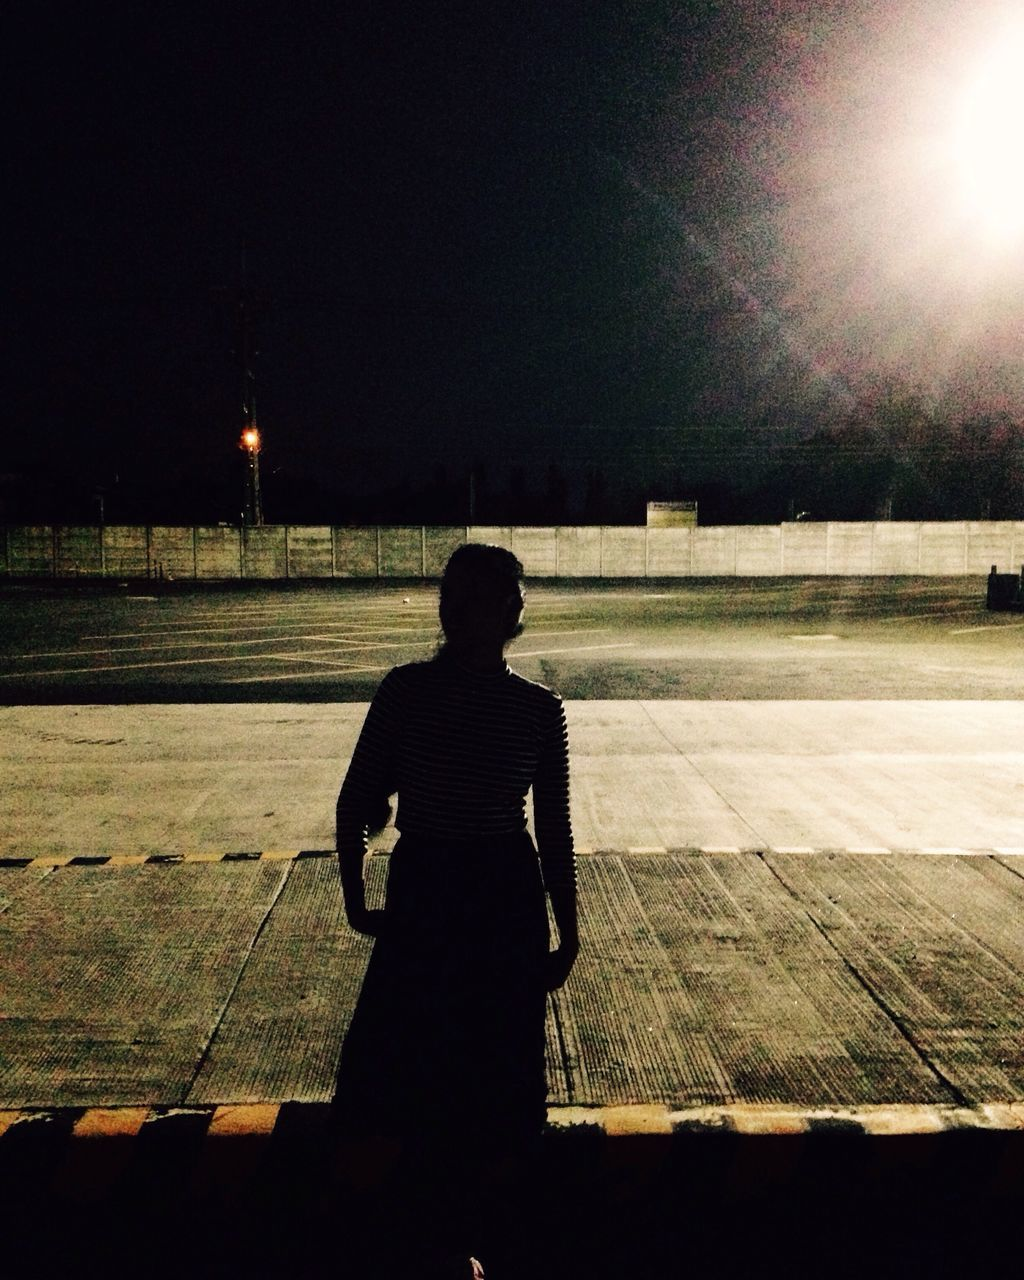 night, one person, real people, outdoors, shadow, silhouette, leisure activity, standing, illuminated, clear sky, men, sky, people